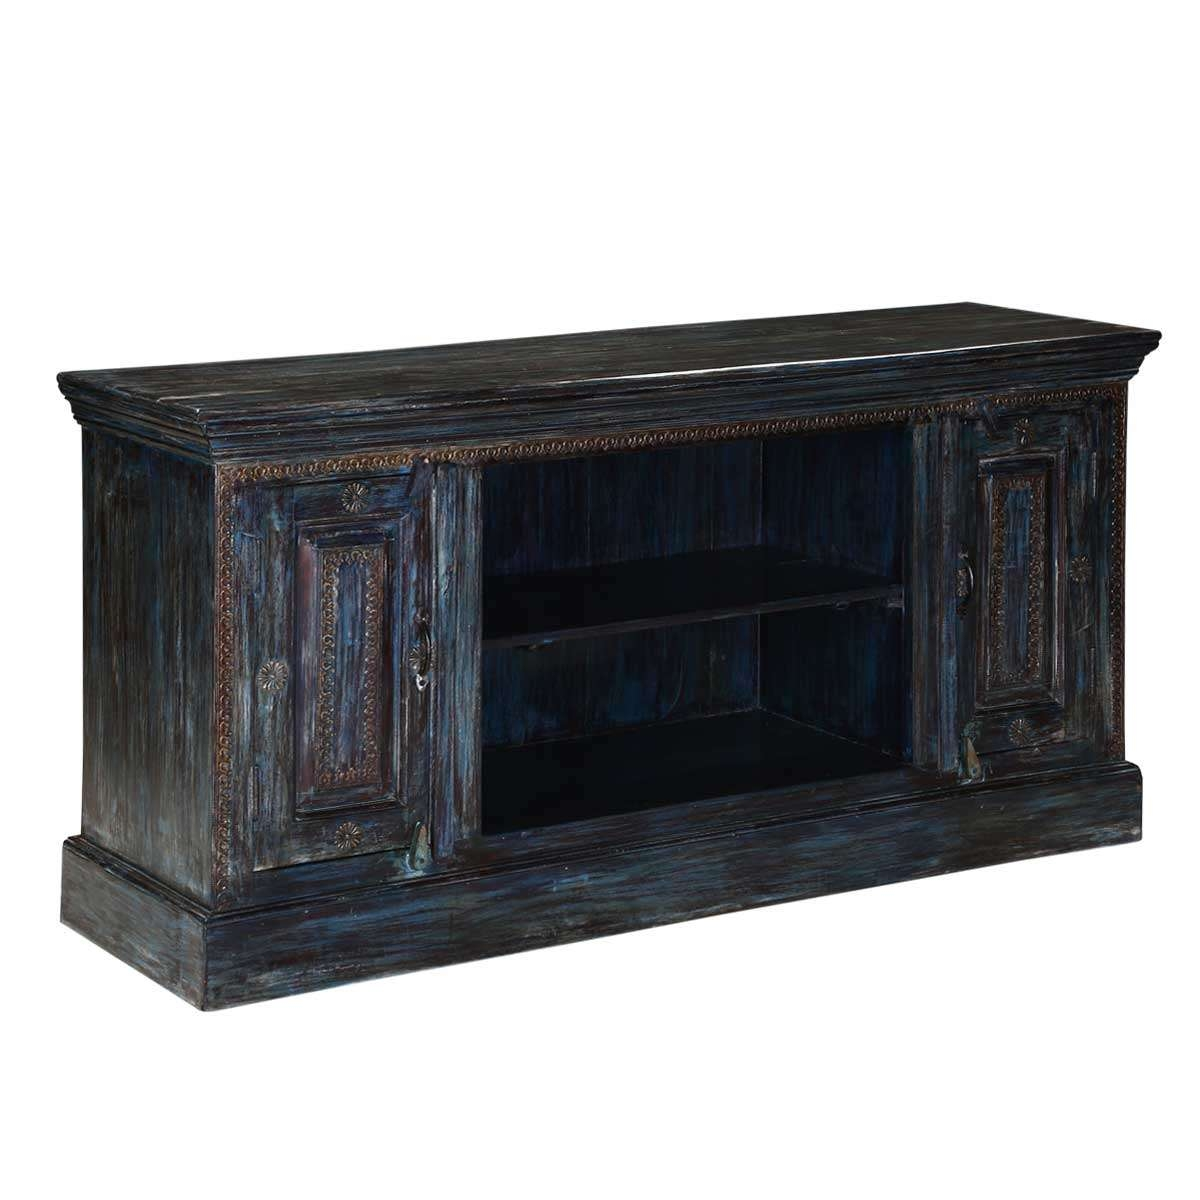 Midnight Reclaimed Wood Rustic Tv Stand Media Cabinet Inside Rustic Tv Stands (View 11 of 20)